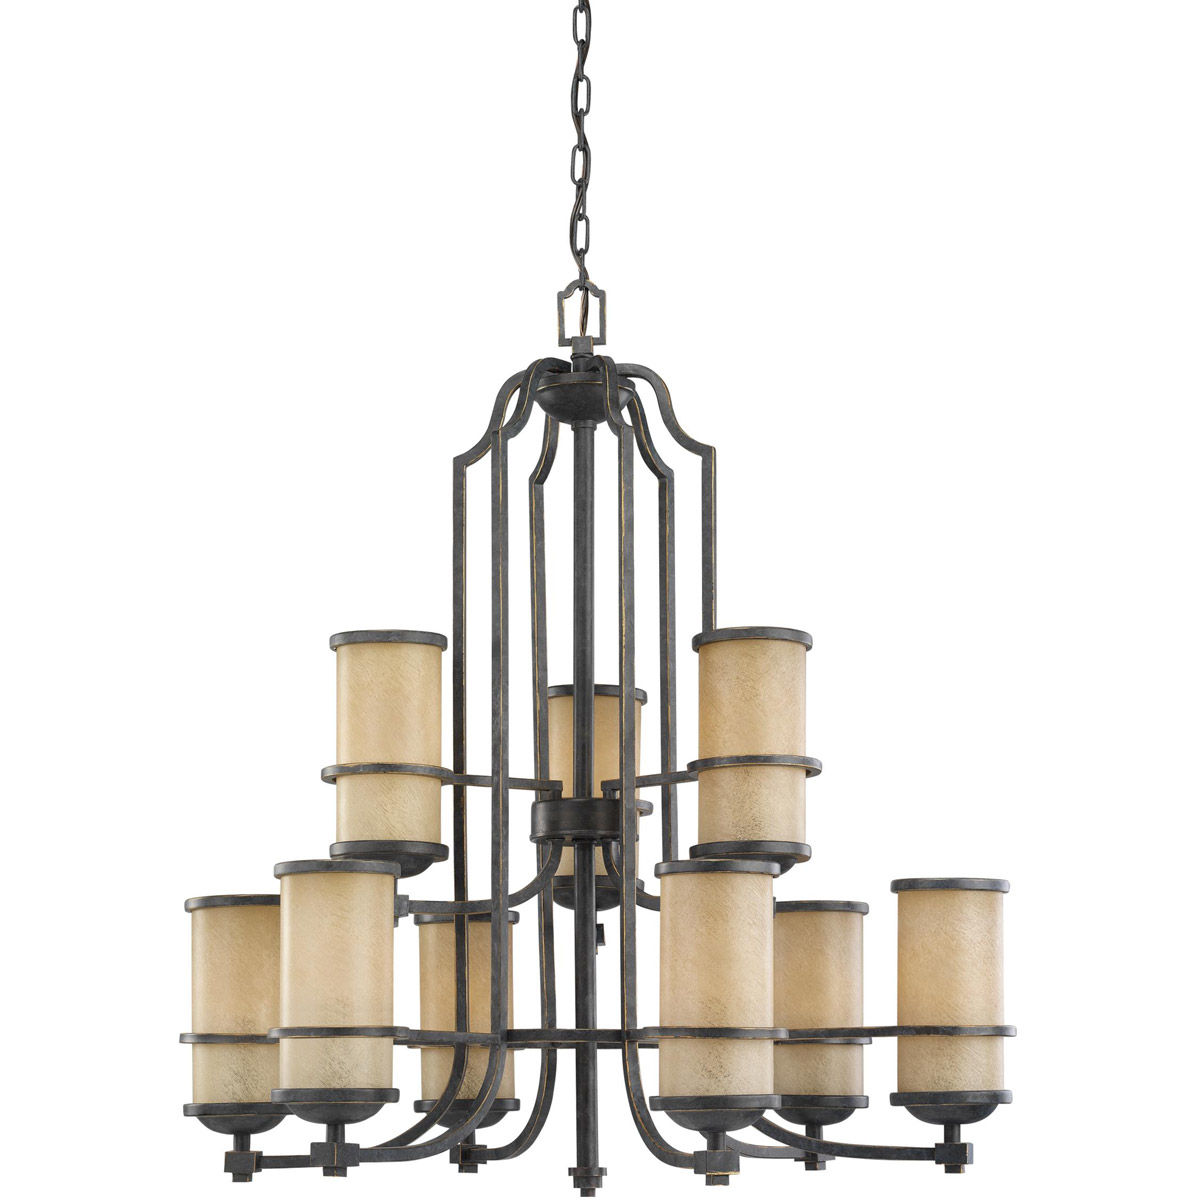 Sea Gull Lighting Roslyn 9 Light Chandelier in Flemish Bronze 31522-845